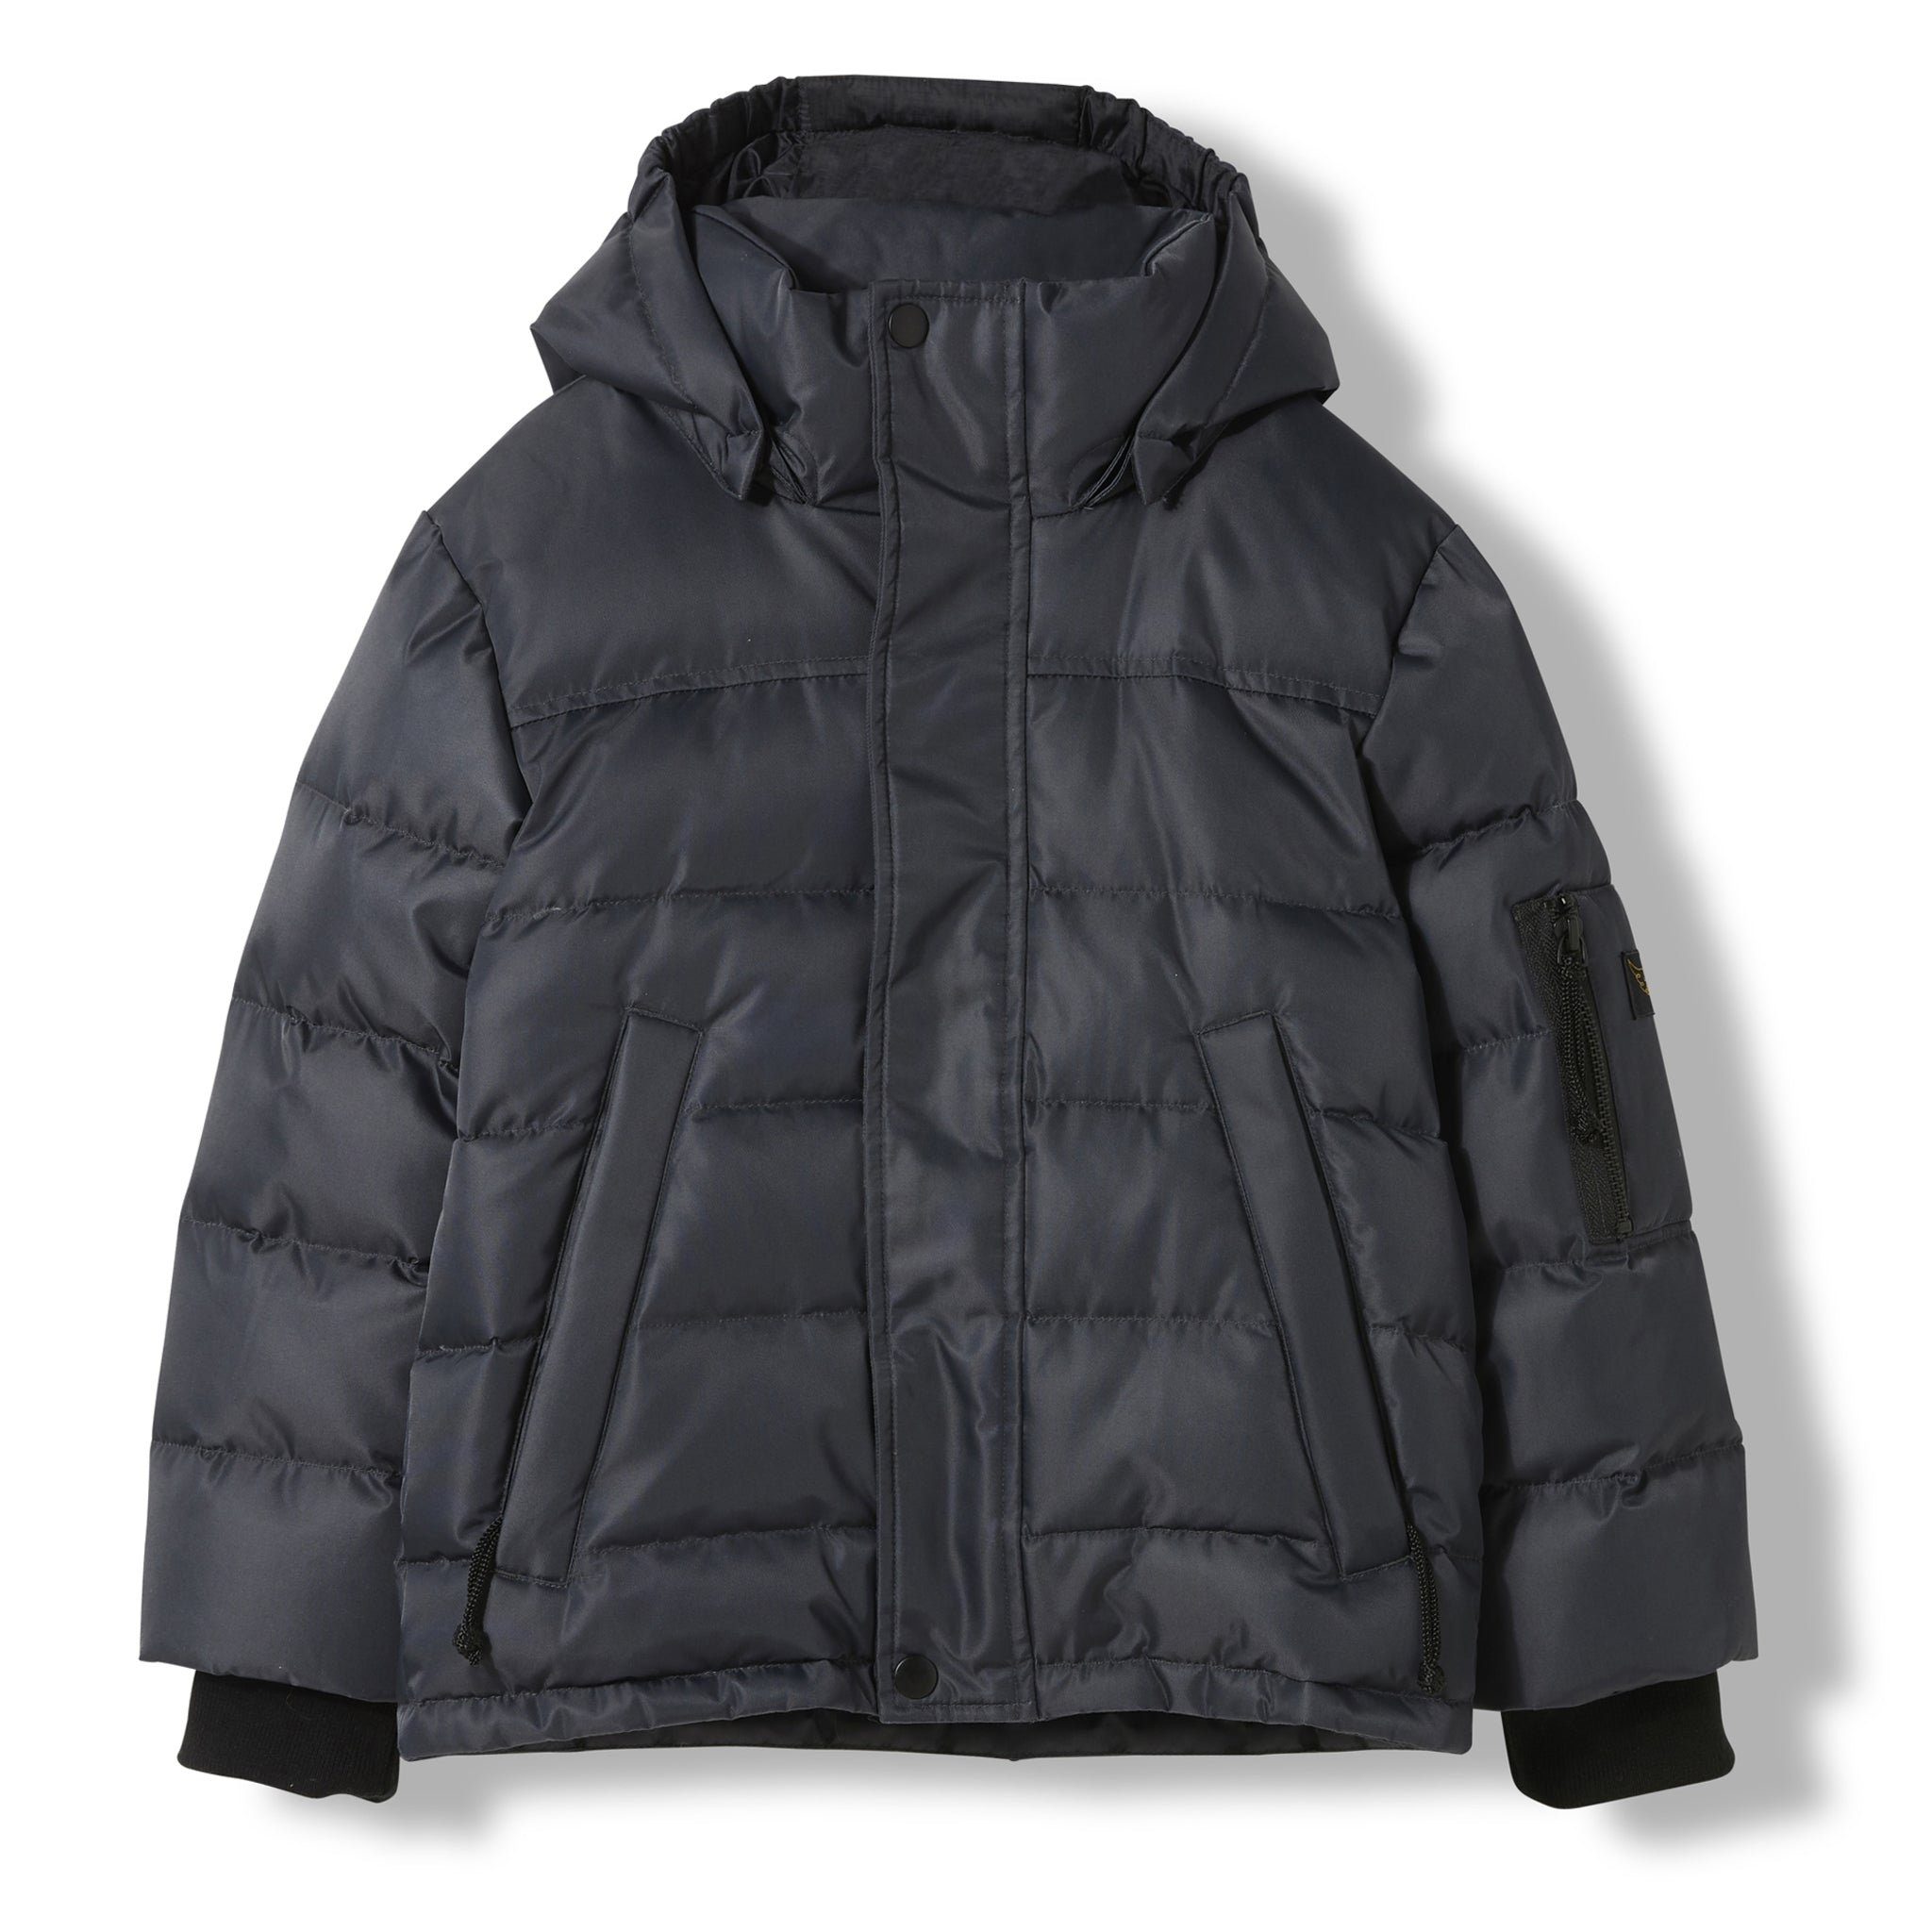 SNOWLYNX Ash Black -  Woven Down Jacket 1